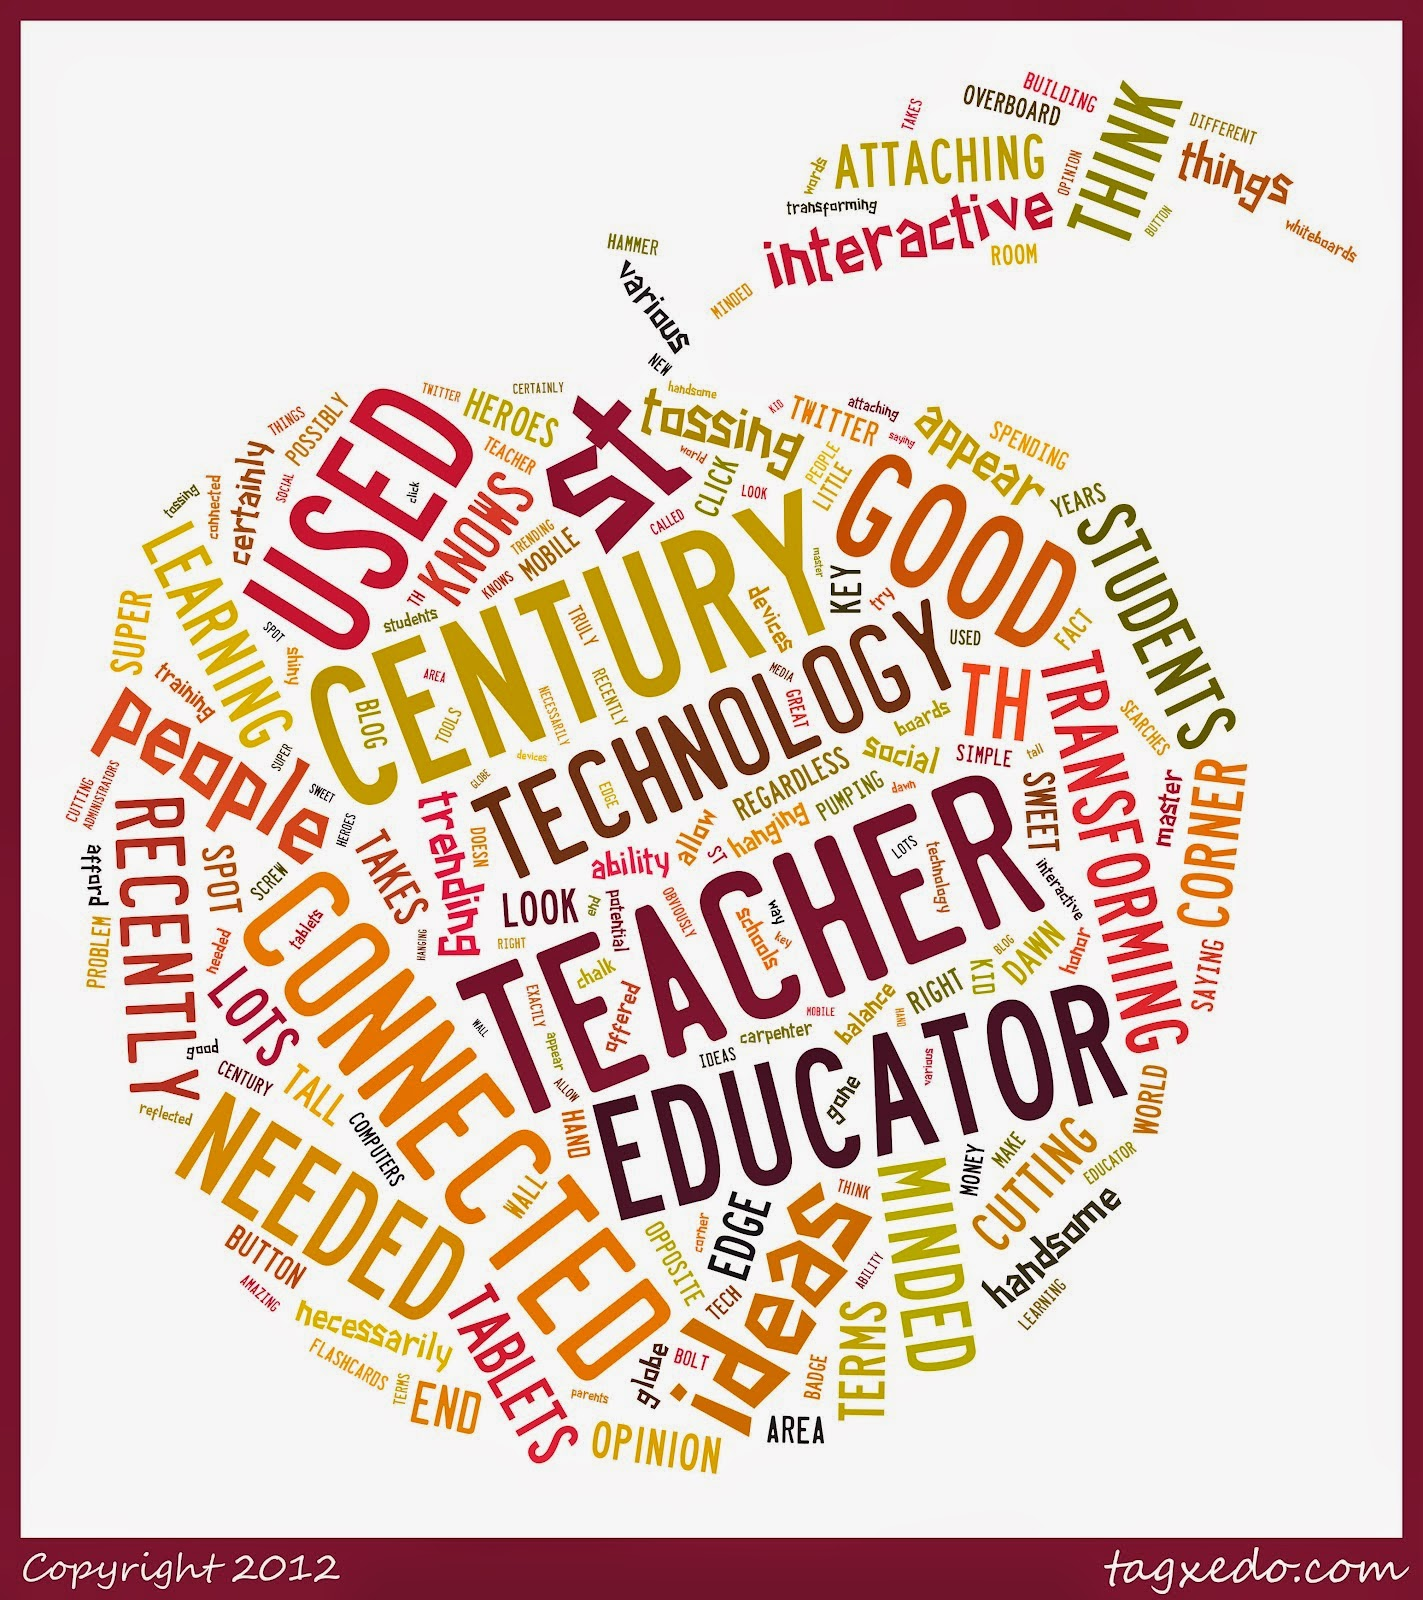 Image of collaged words pertaining to 21st century education